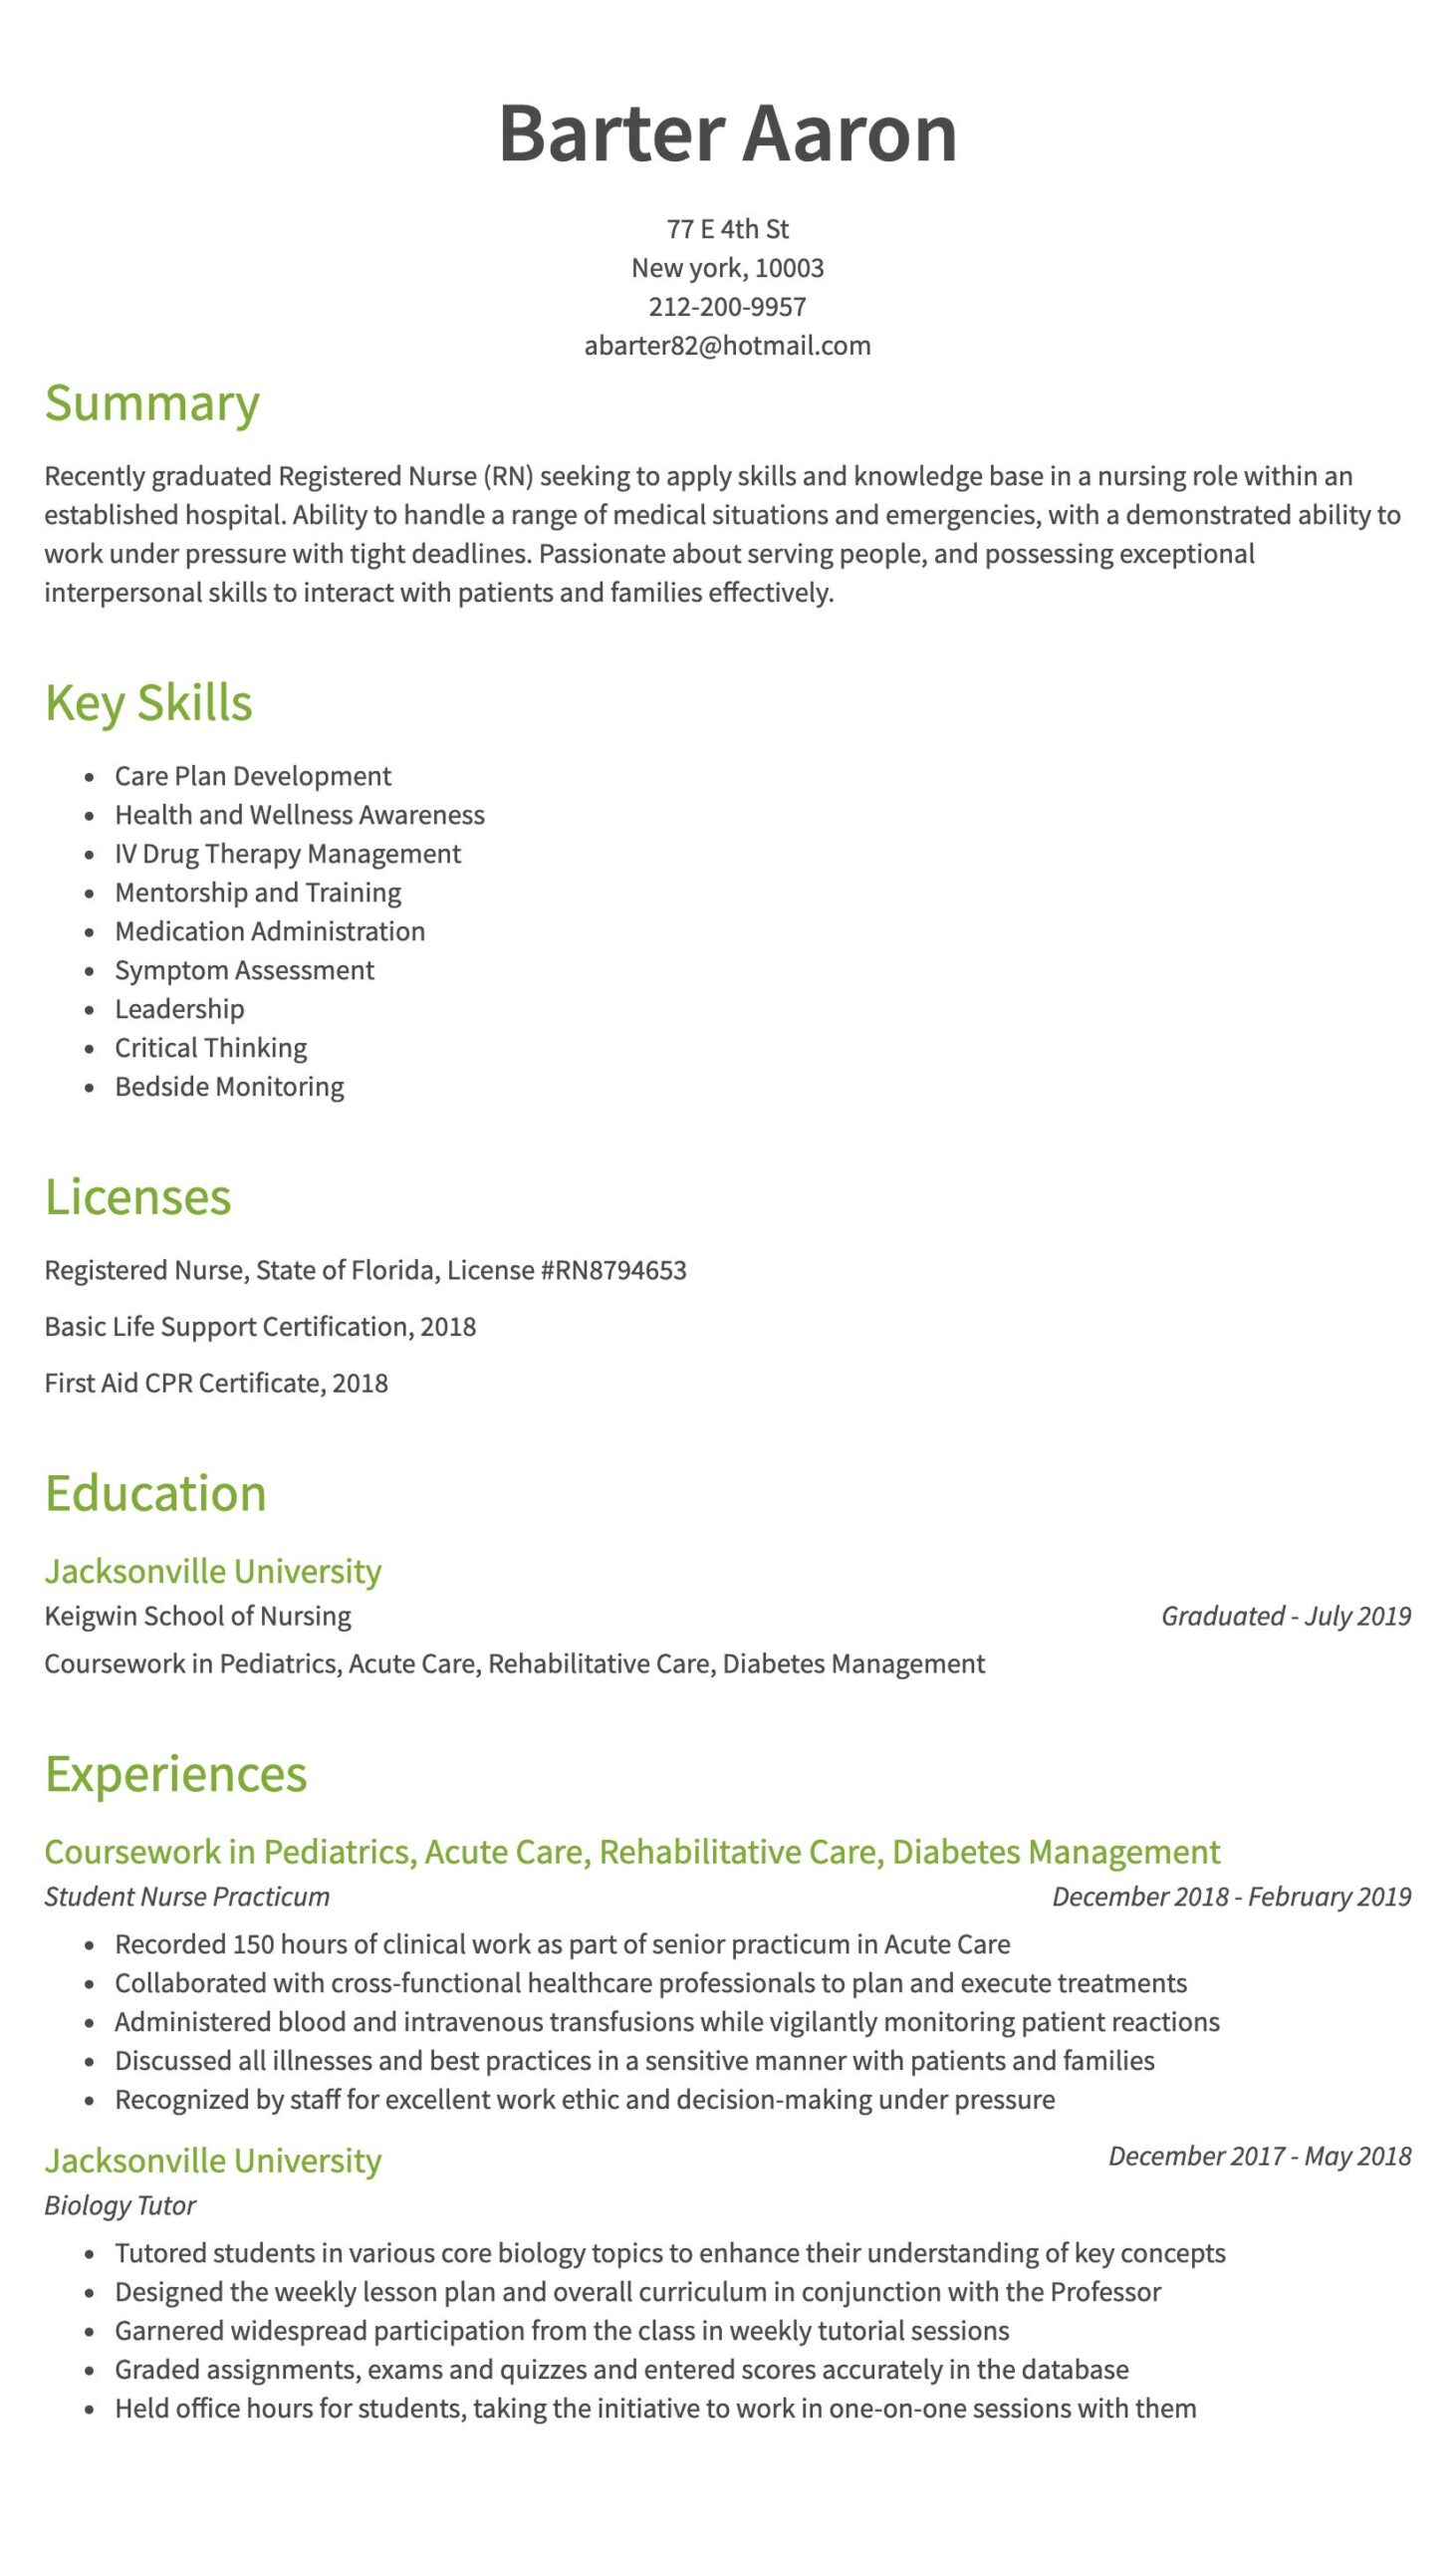 nursing resume examples samples written by rn managers writing years of exp punctual and Resume Writing A Nursing Resume